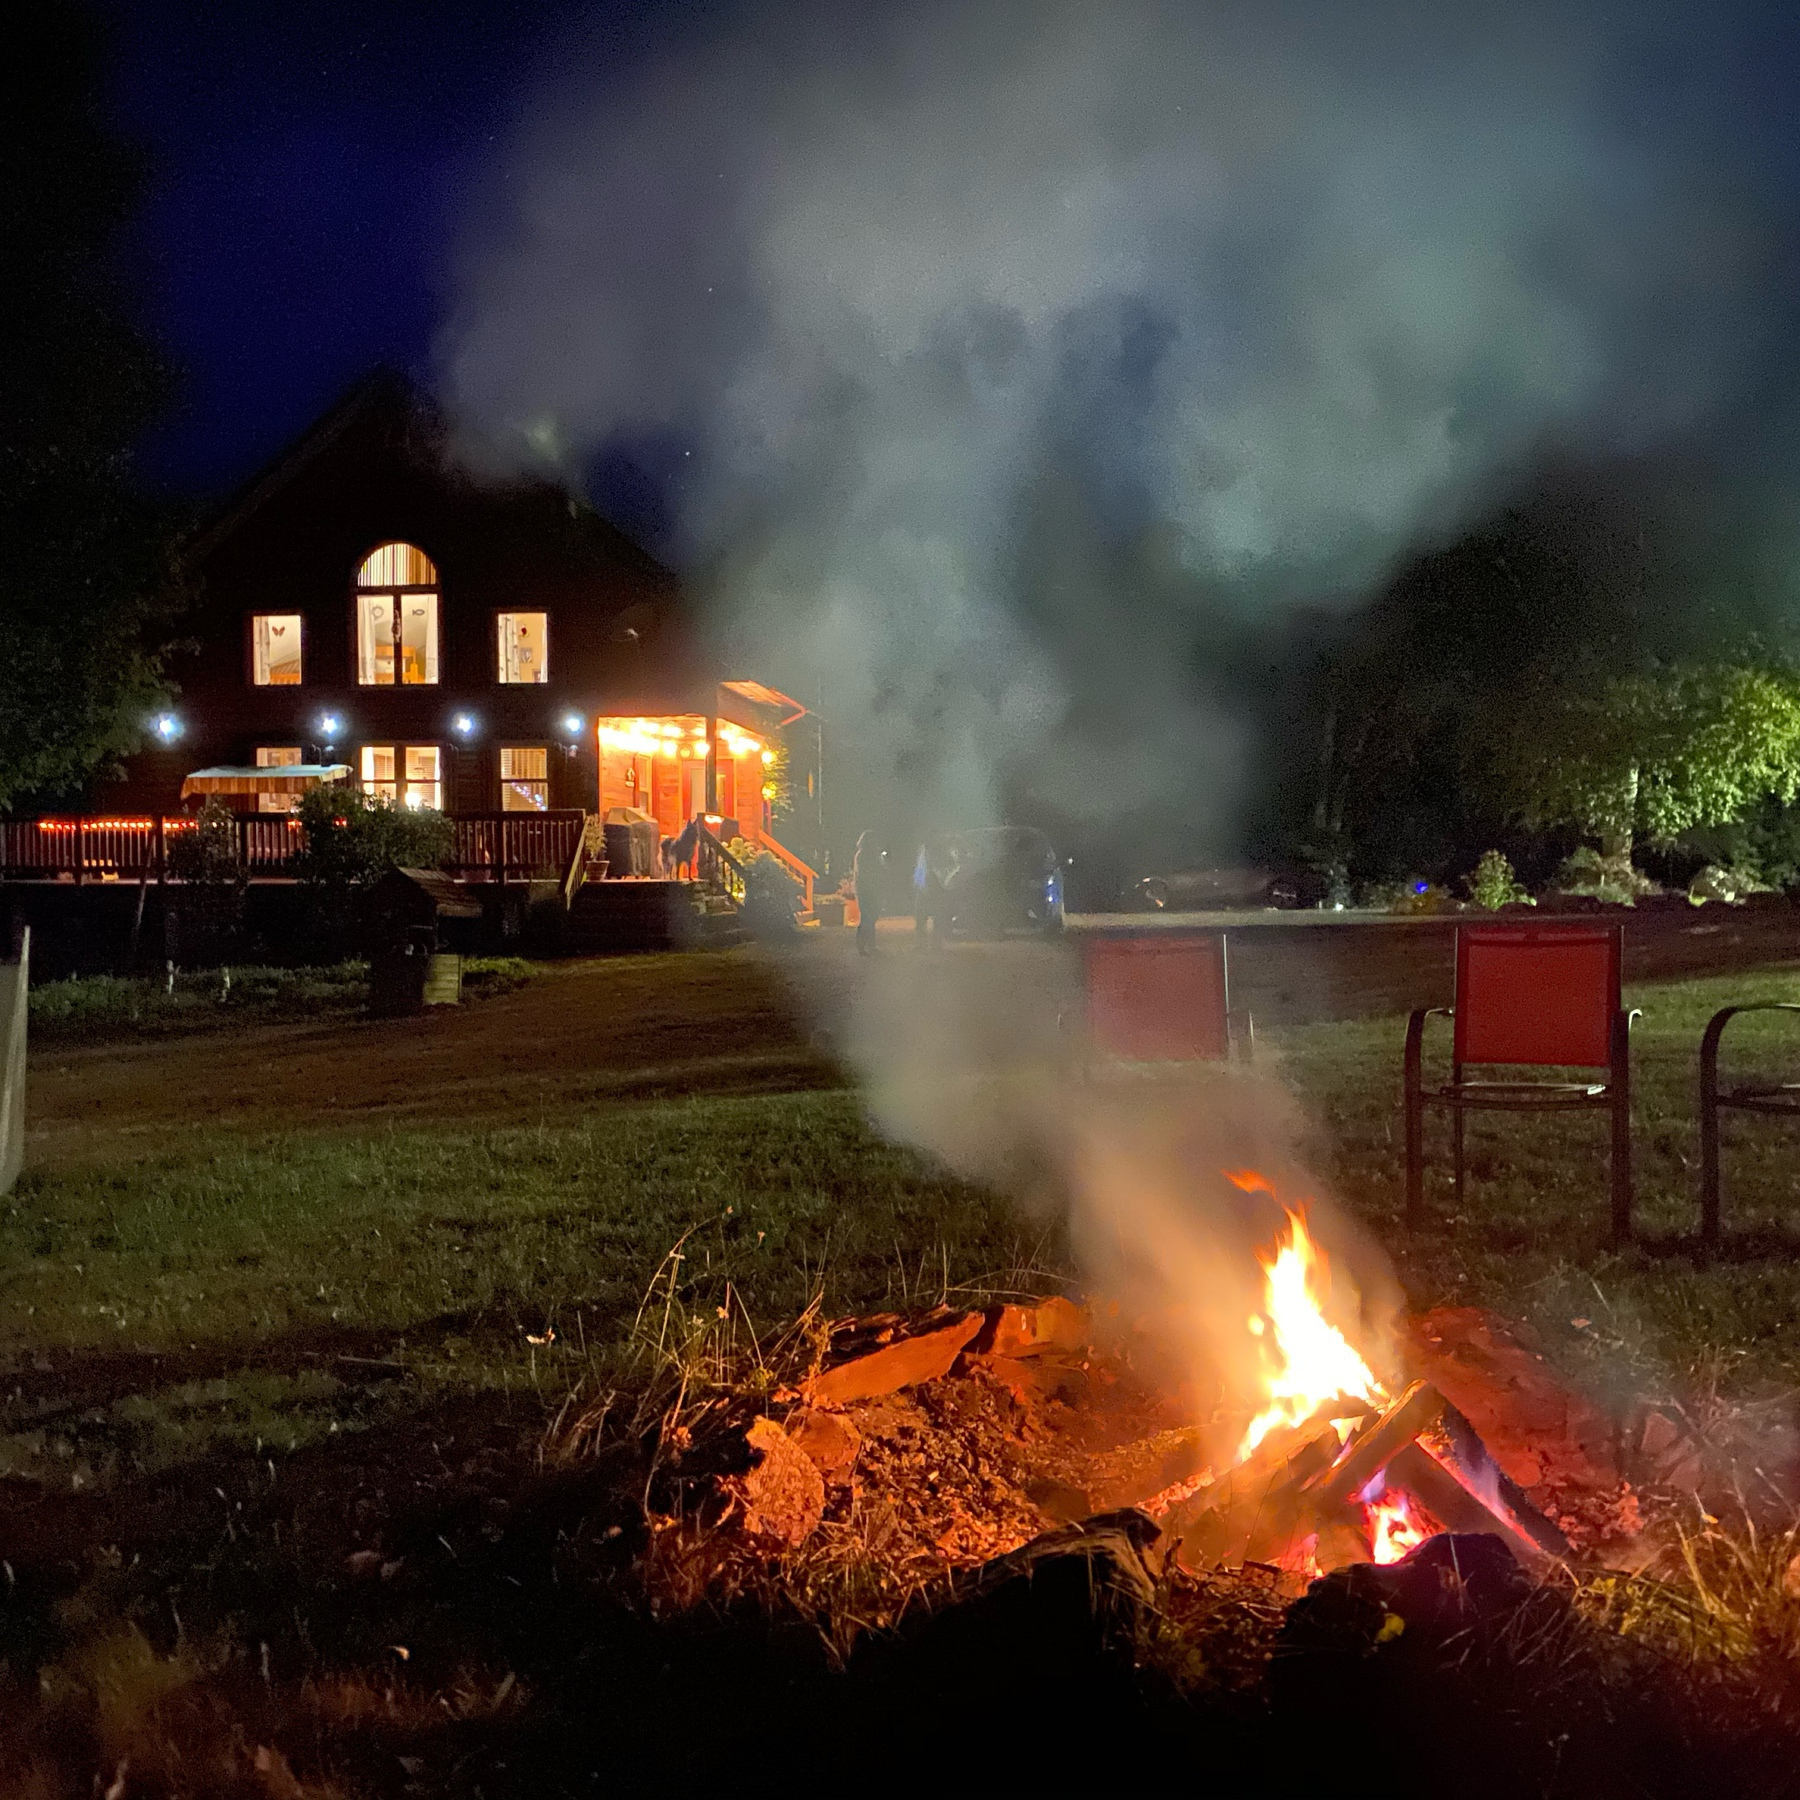 House and fire in pit at night.